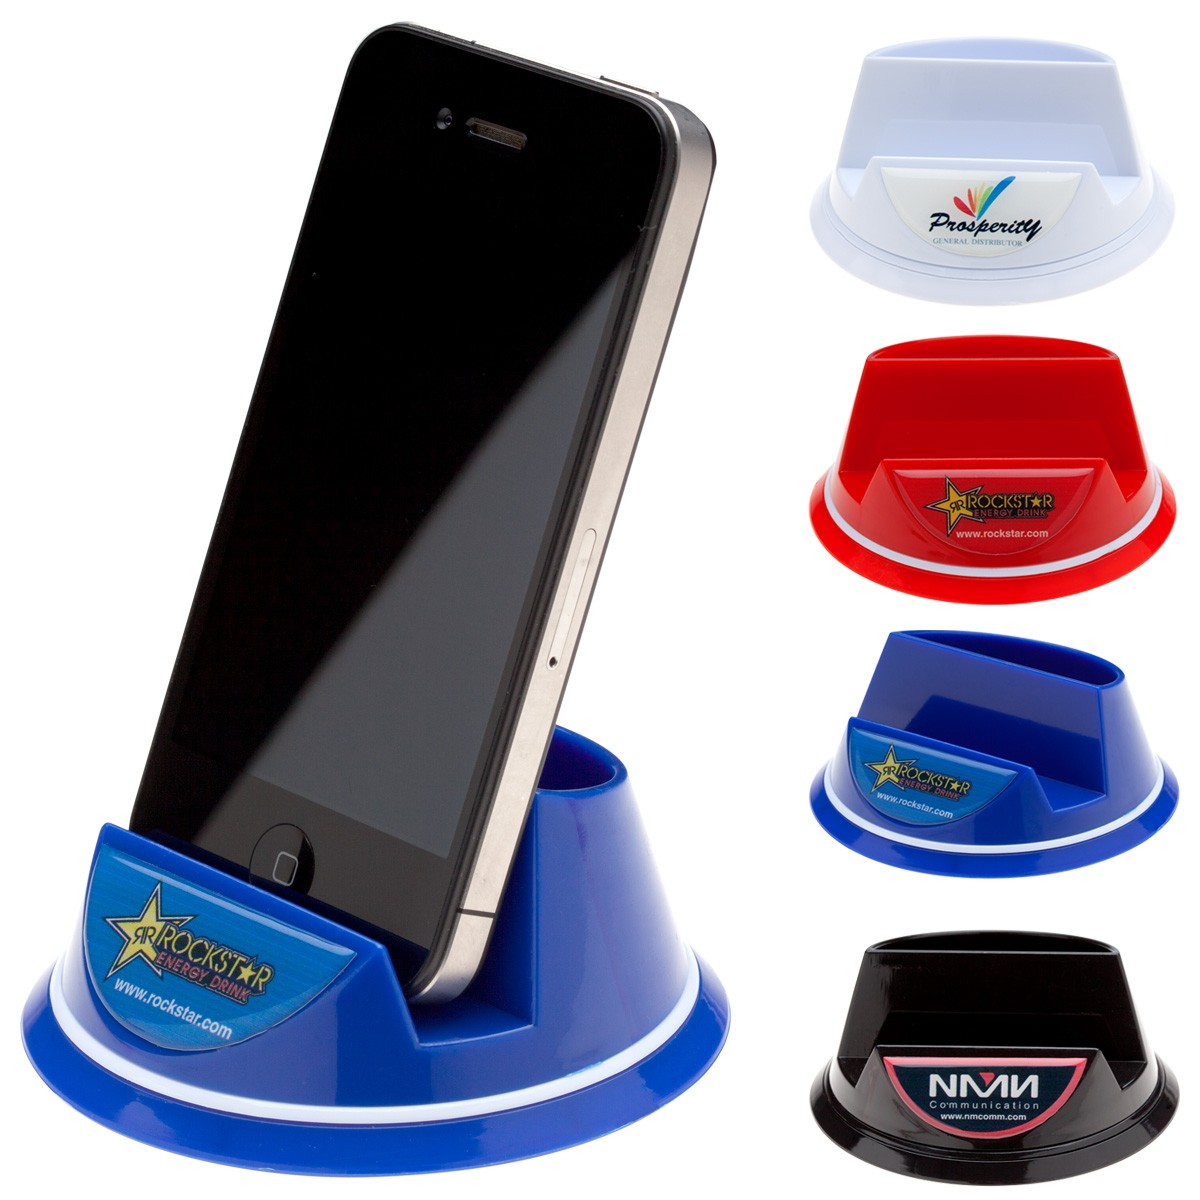 Revolving Cell Phone Stand  With Paper Clip Holder  WASDPFU0300